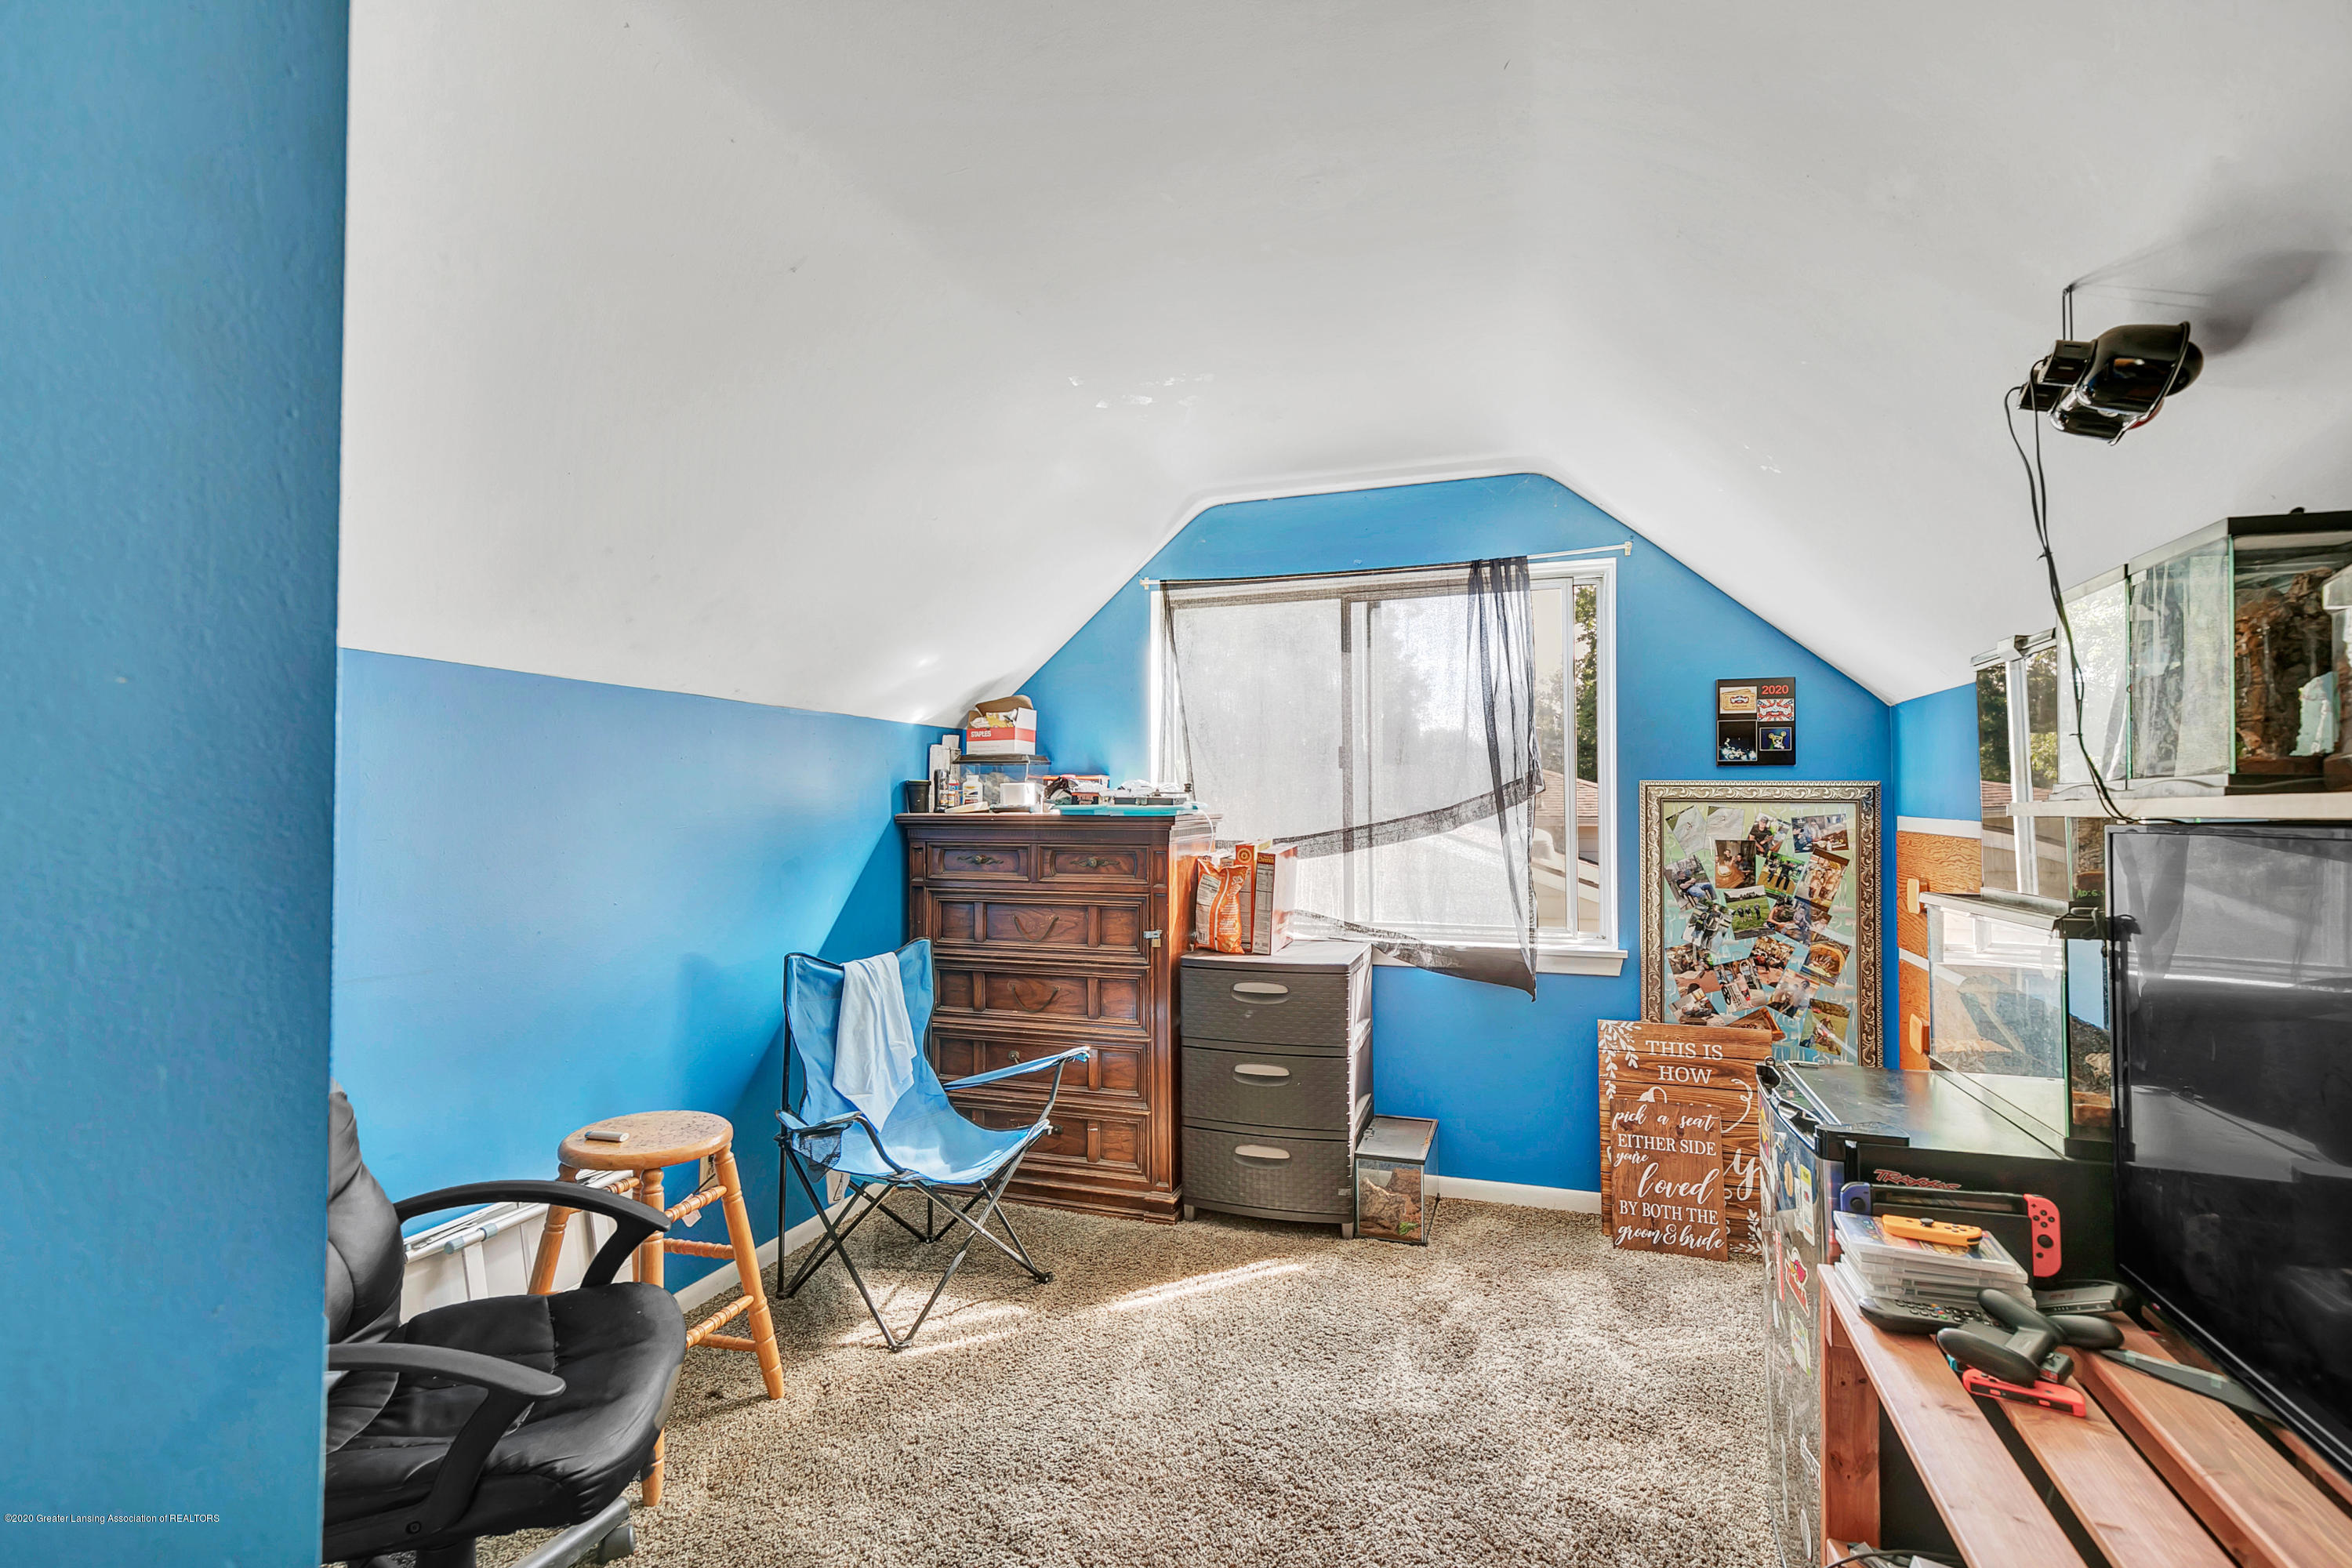 2844 S Deerfield Ave - 9I3A2550 - 13